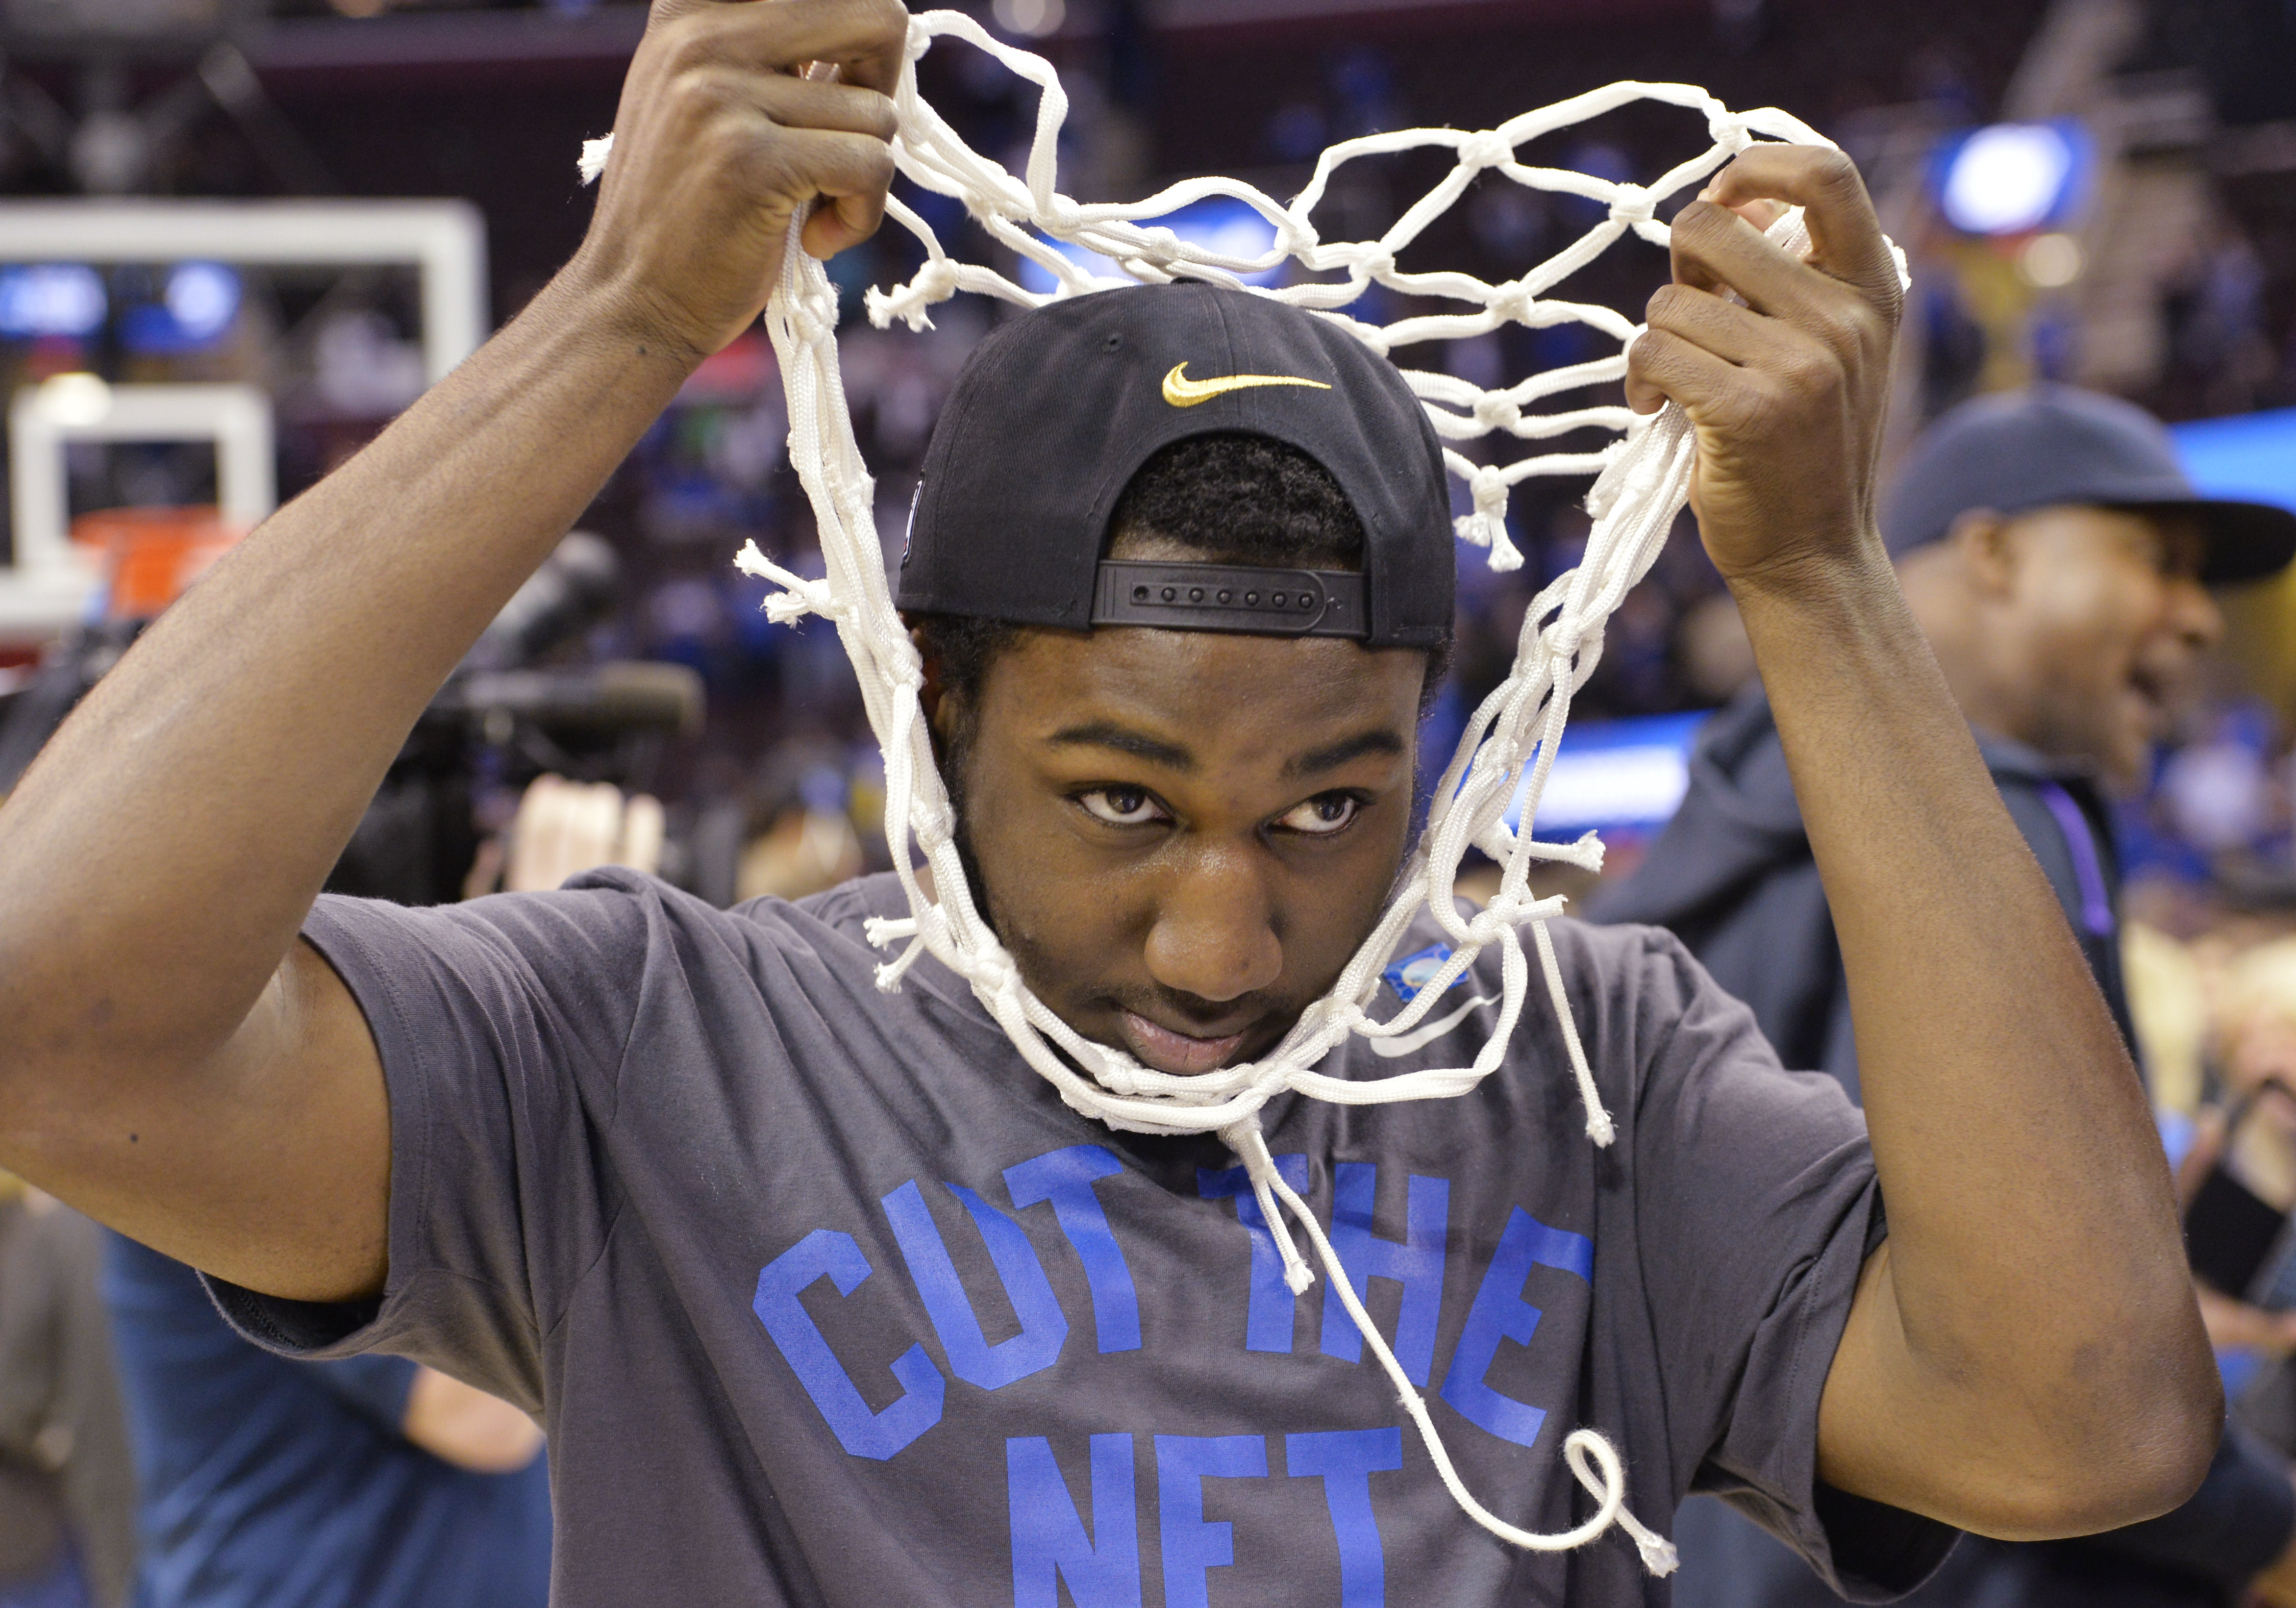 Kentucky's Dominique Hawkins pulls the net over his head during the celebration after Kentucky's 68-66 win over Notre Dame in a college basketball game in the NCAA men's tournament regional finals, Saturday, March 28, 2015, in Cleveland. Kentucky remains